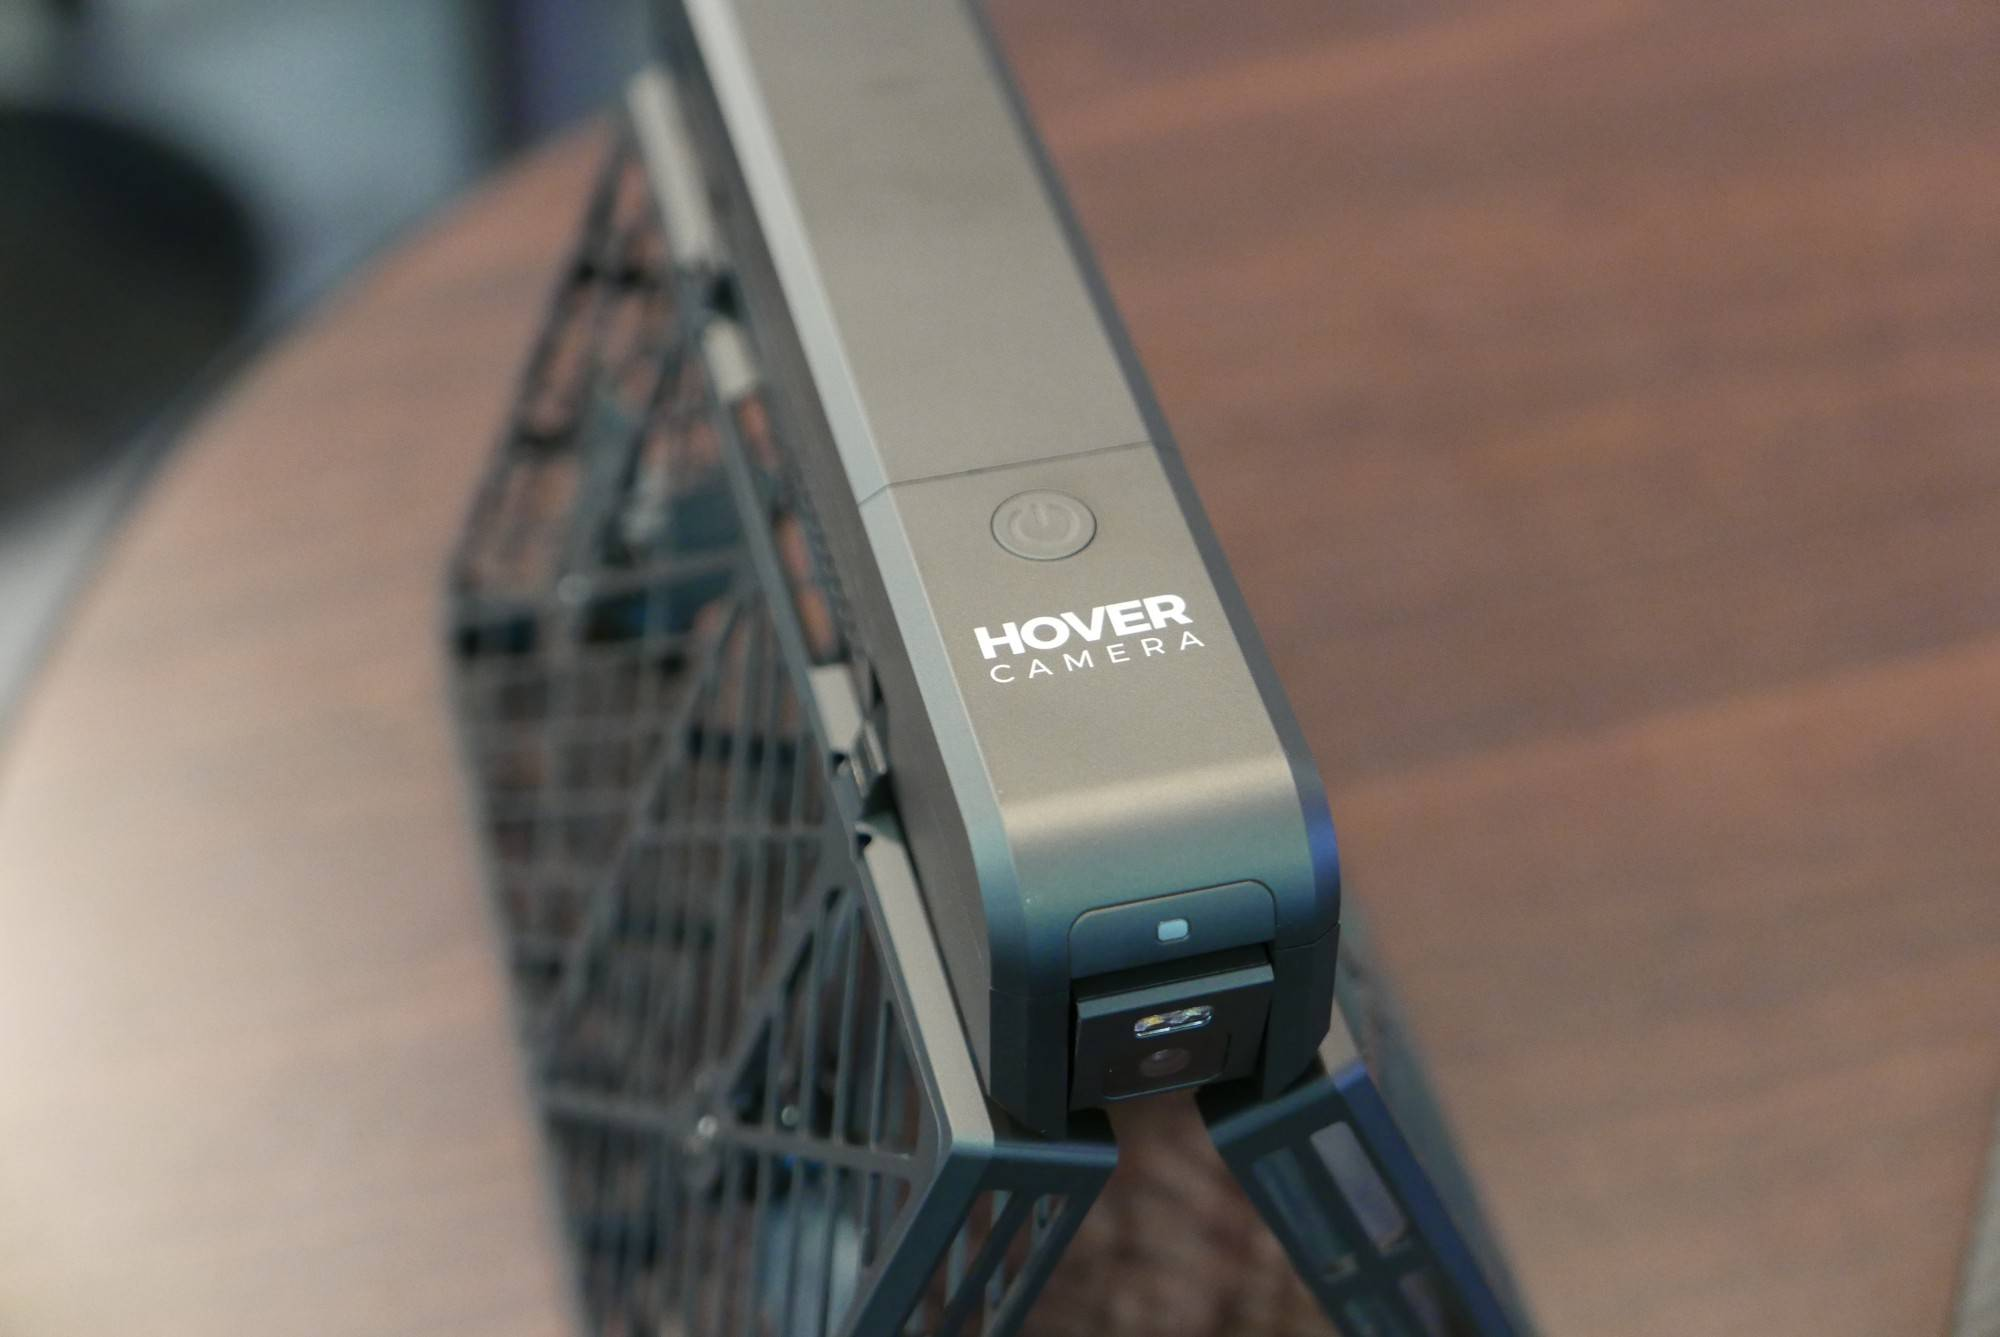 Hover Camera Passport PingWest Photo By Hao Ying 3